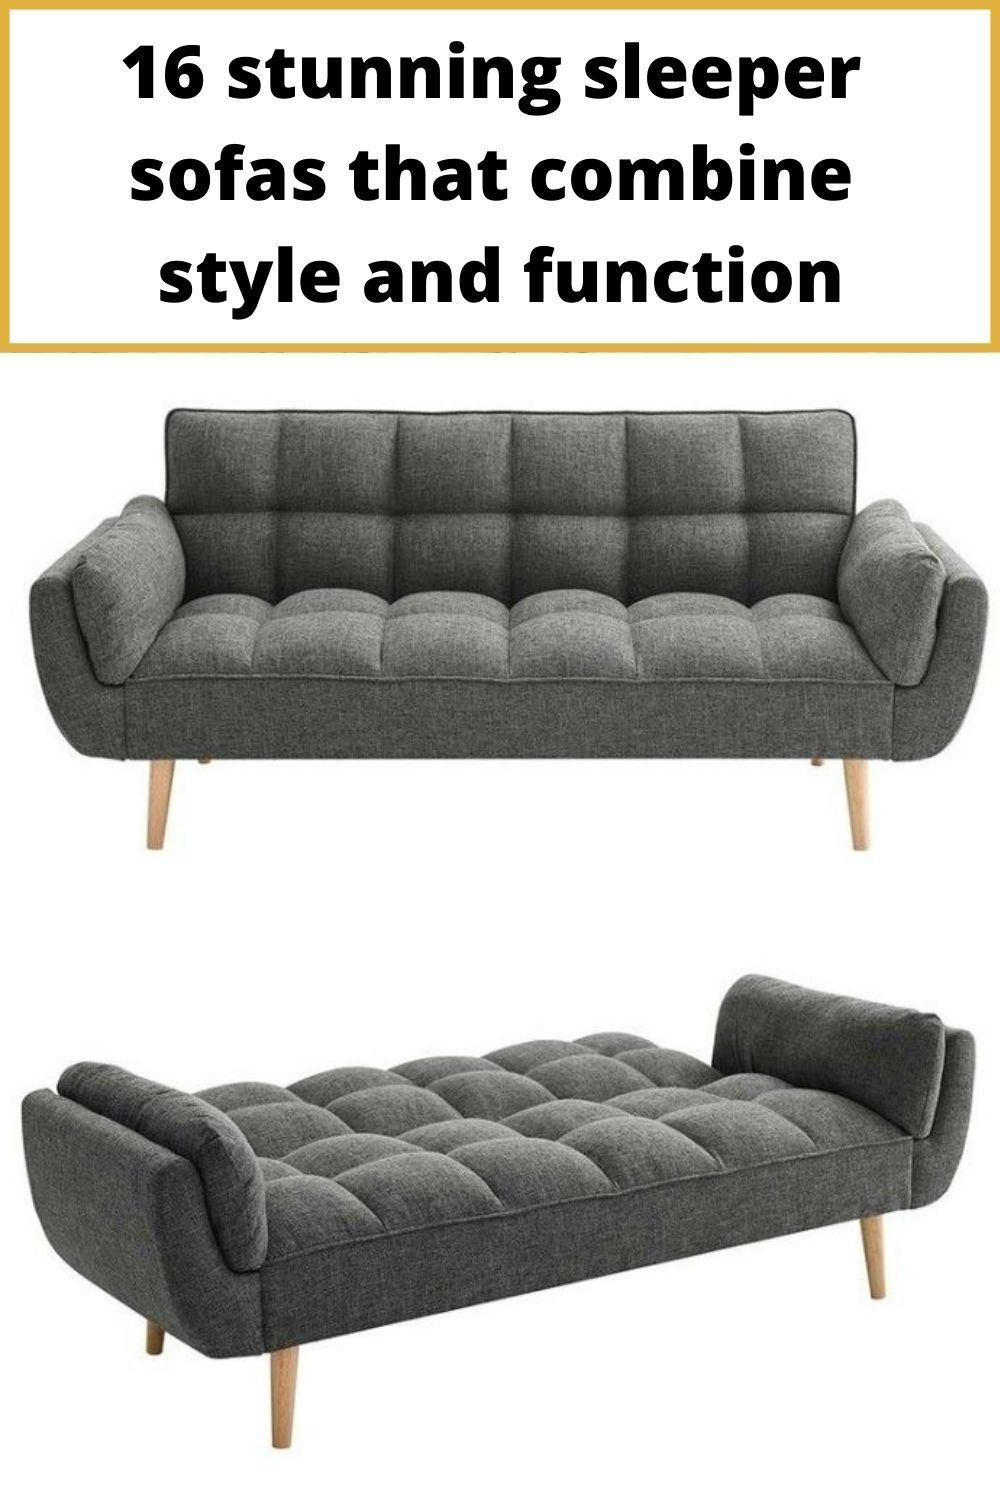 16 Stunning Sleeper Sofas That Combine Style And Function Living In A Shoebox In 2020 Sleeper Sofa Furniture For Small Spaces Grey Sofa Bed